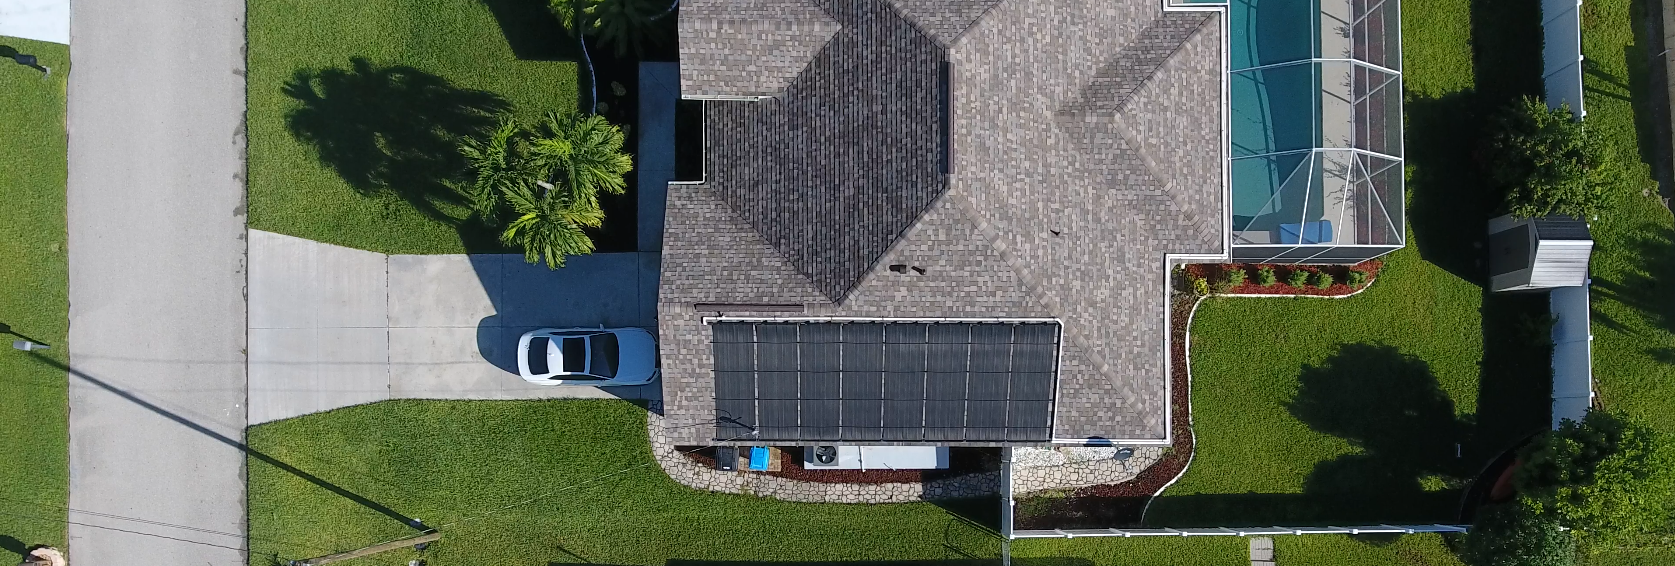 Solar Pool Heating Aerial Picture from Drone